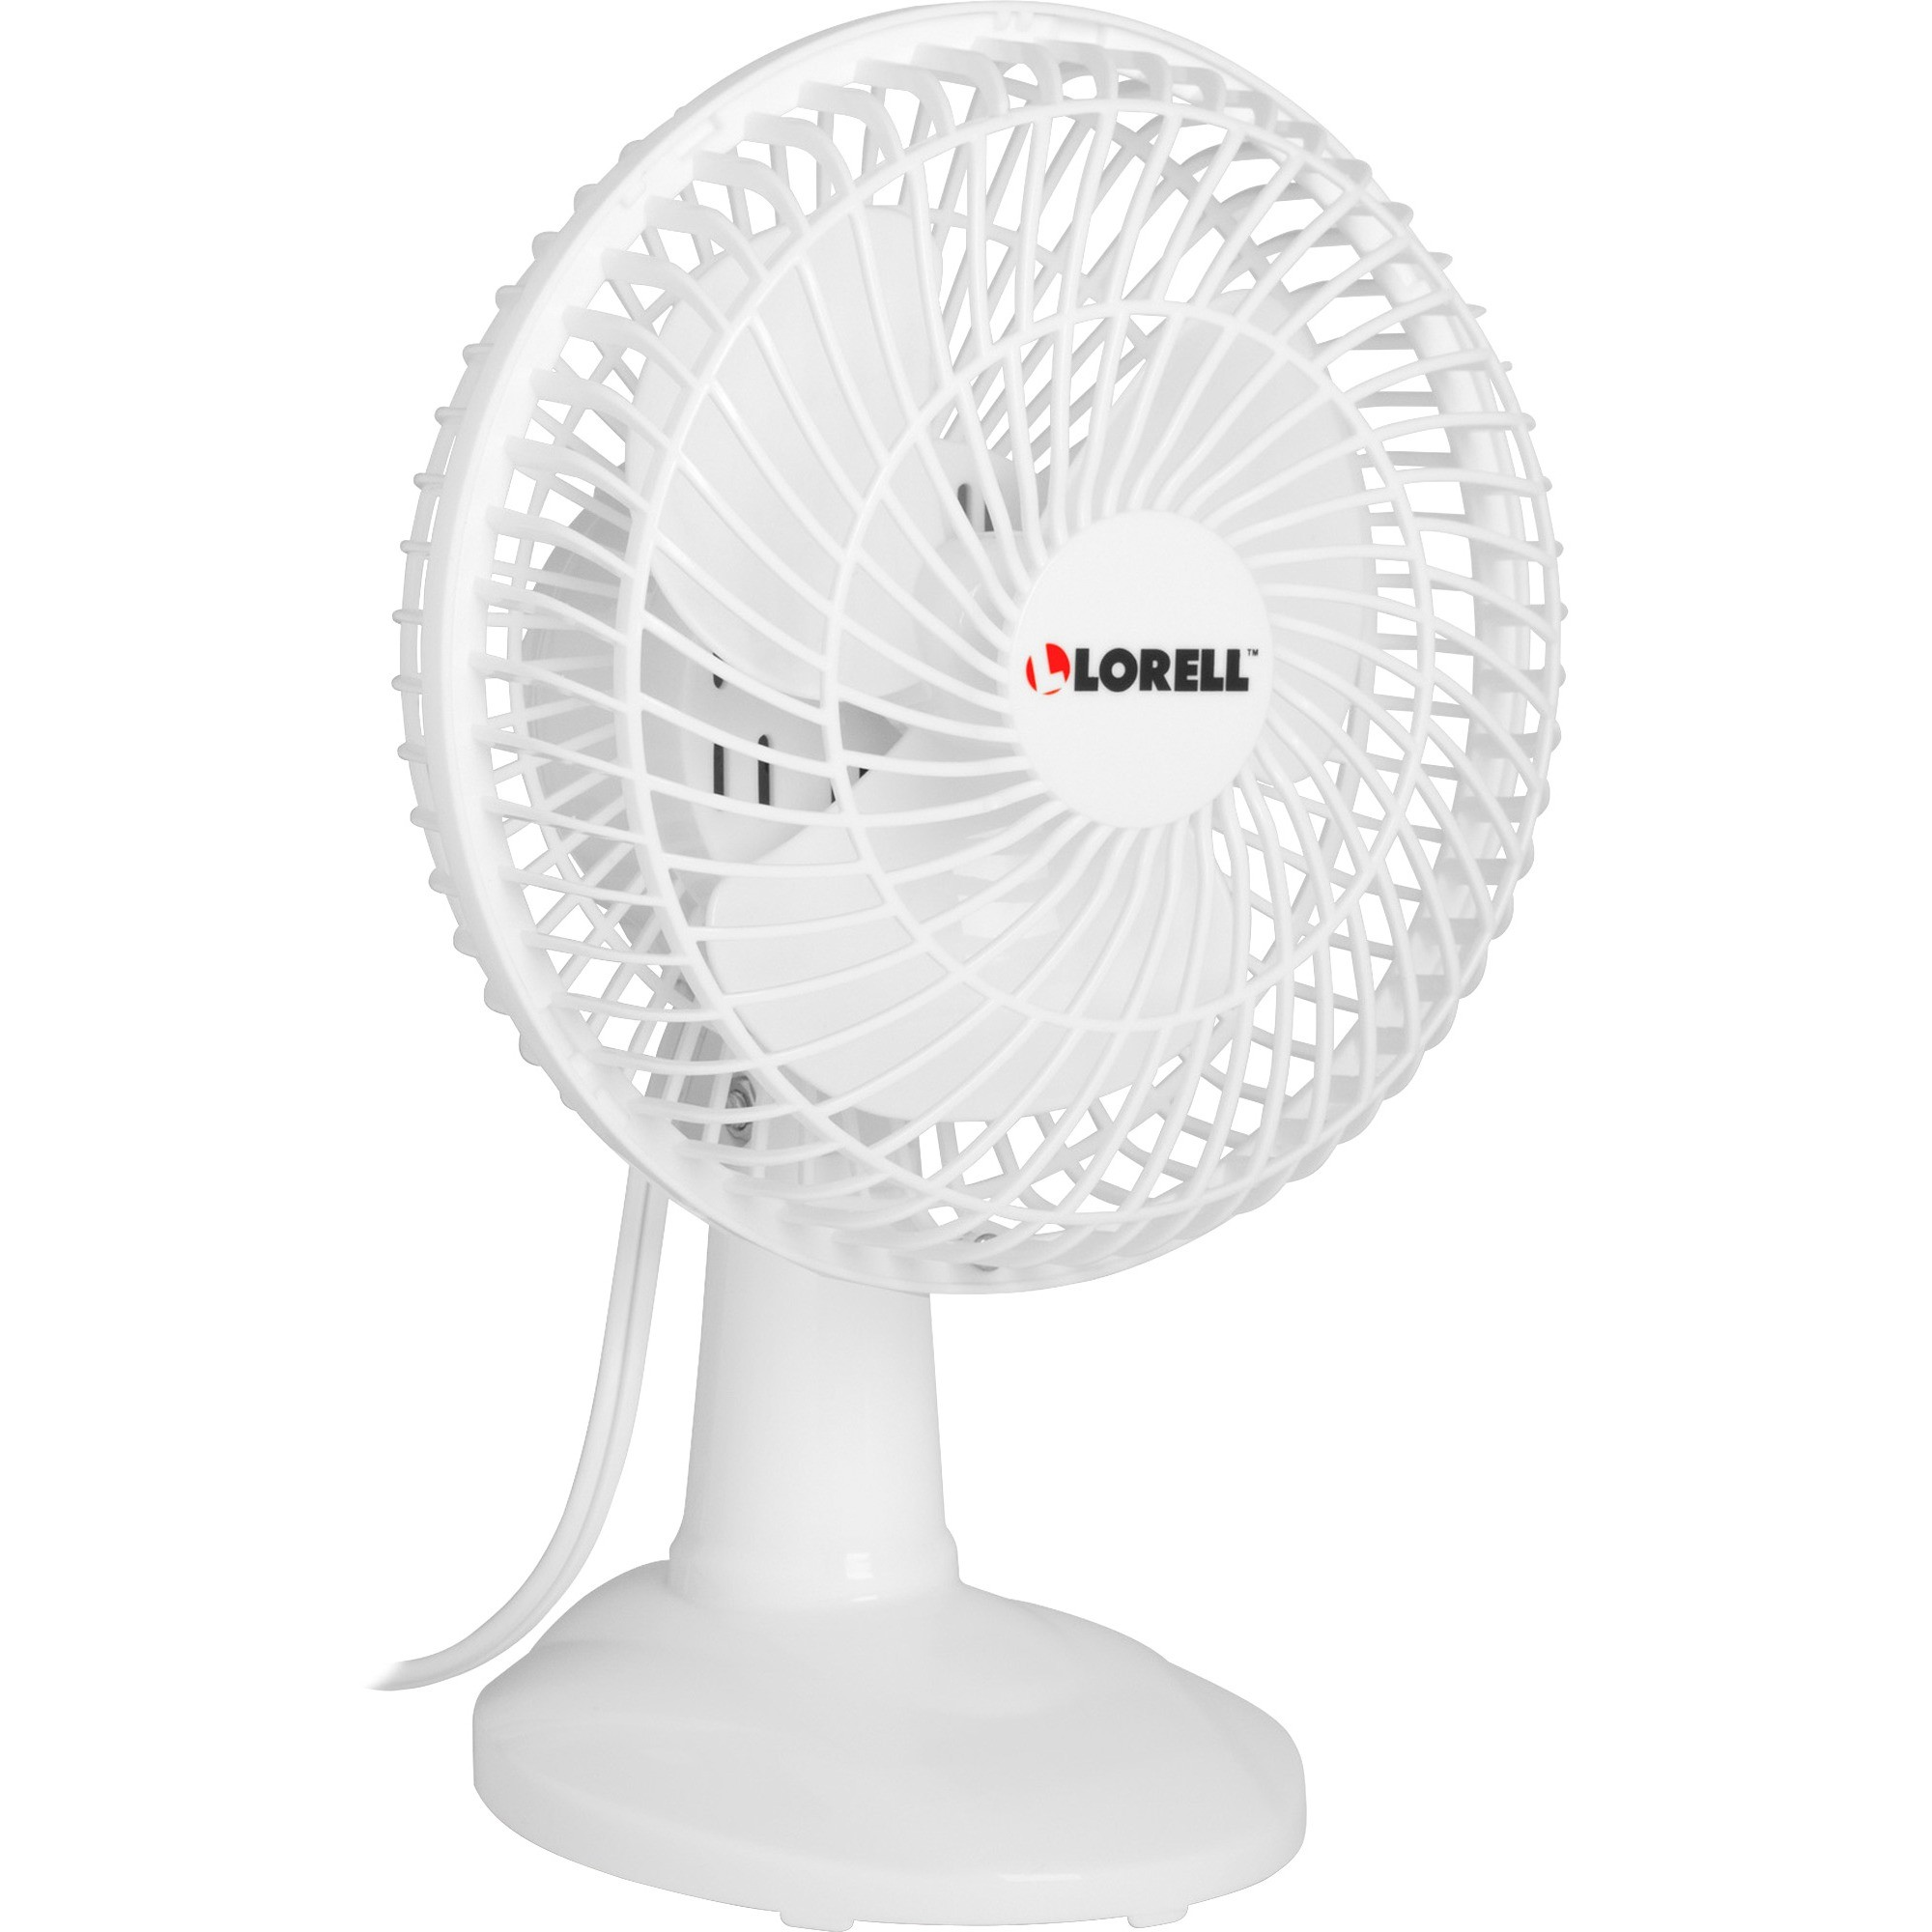 "Lorell 6"" Two Speed Tilt Plastic Desk Fan (llr-49257)"